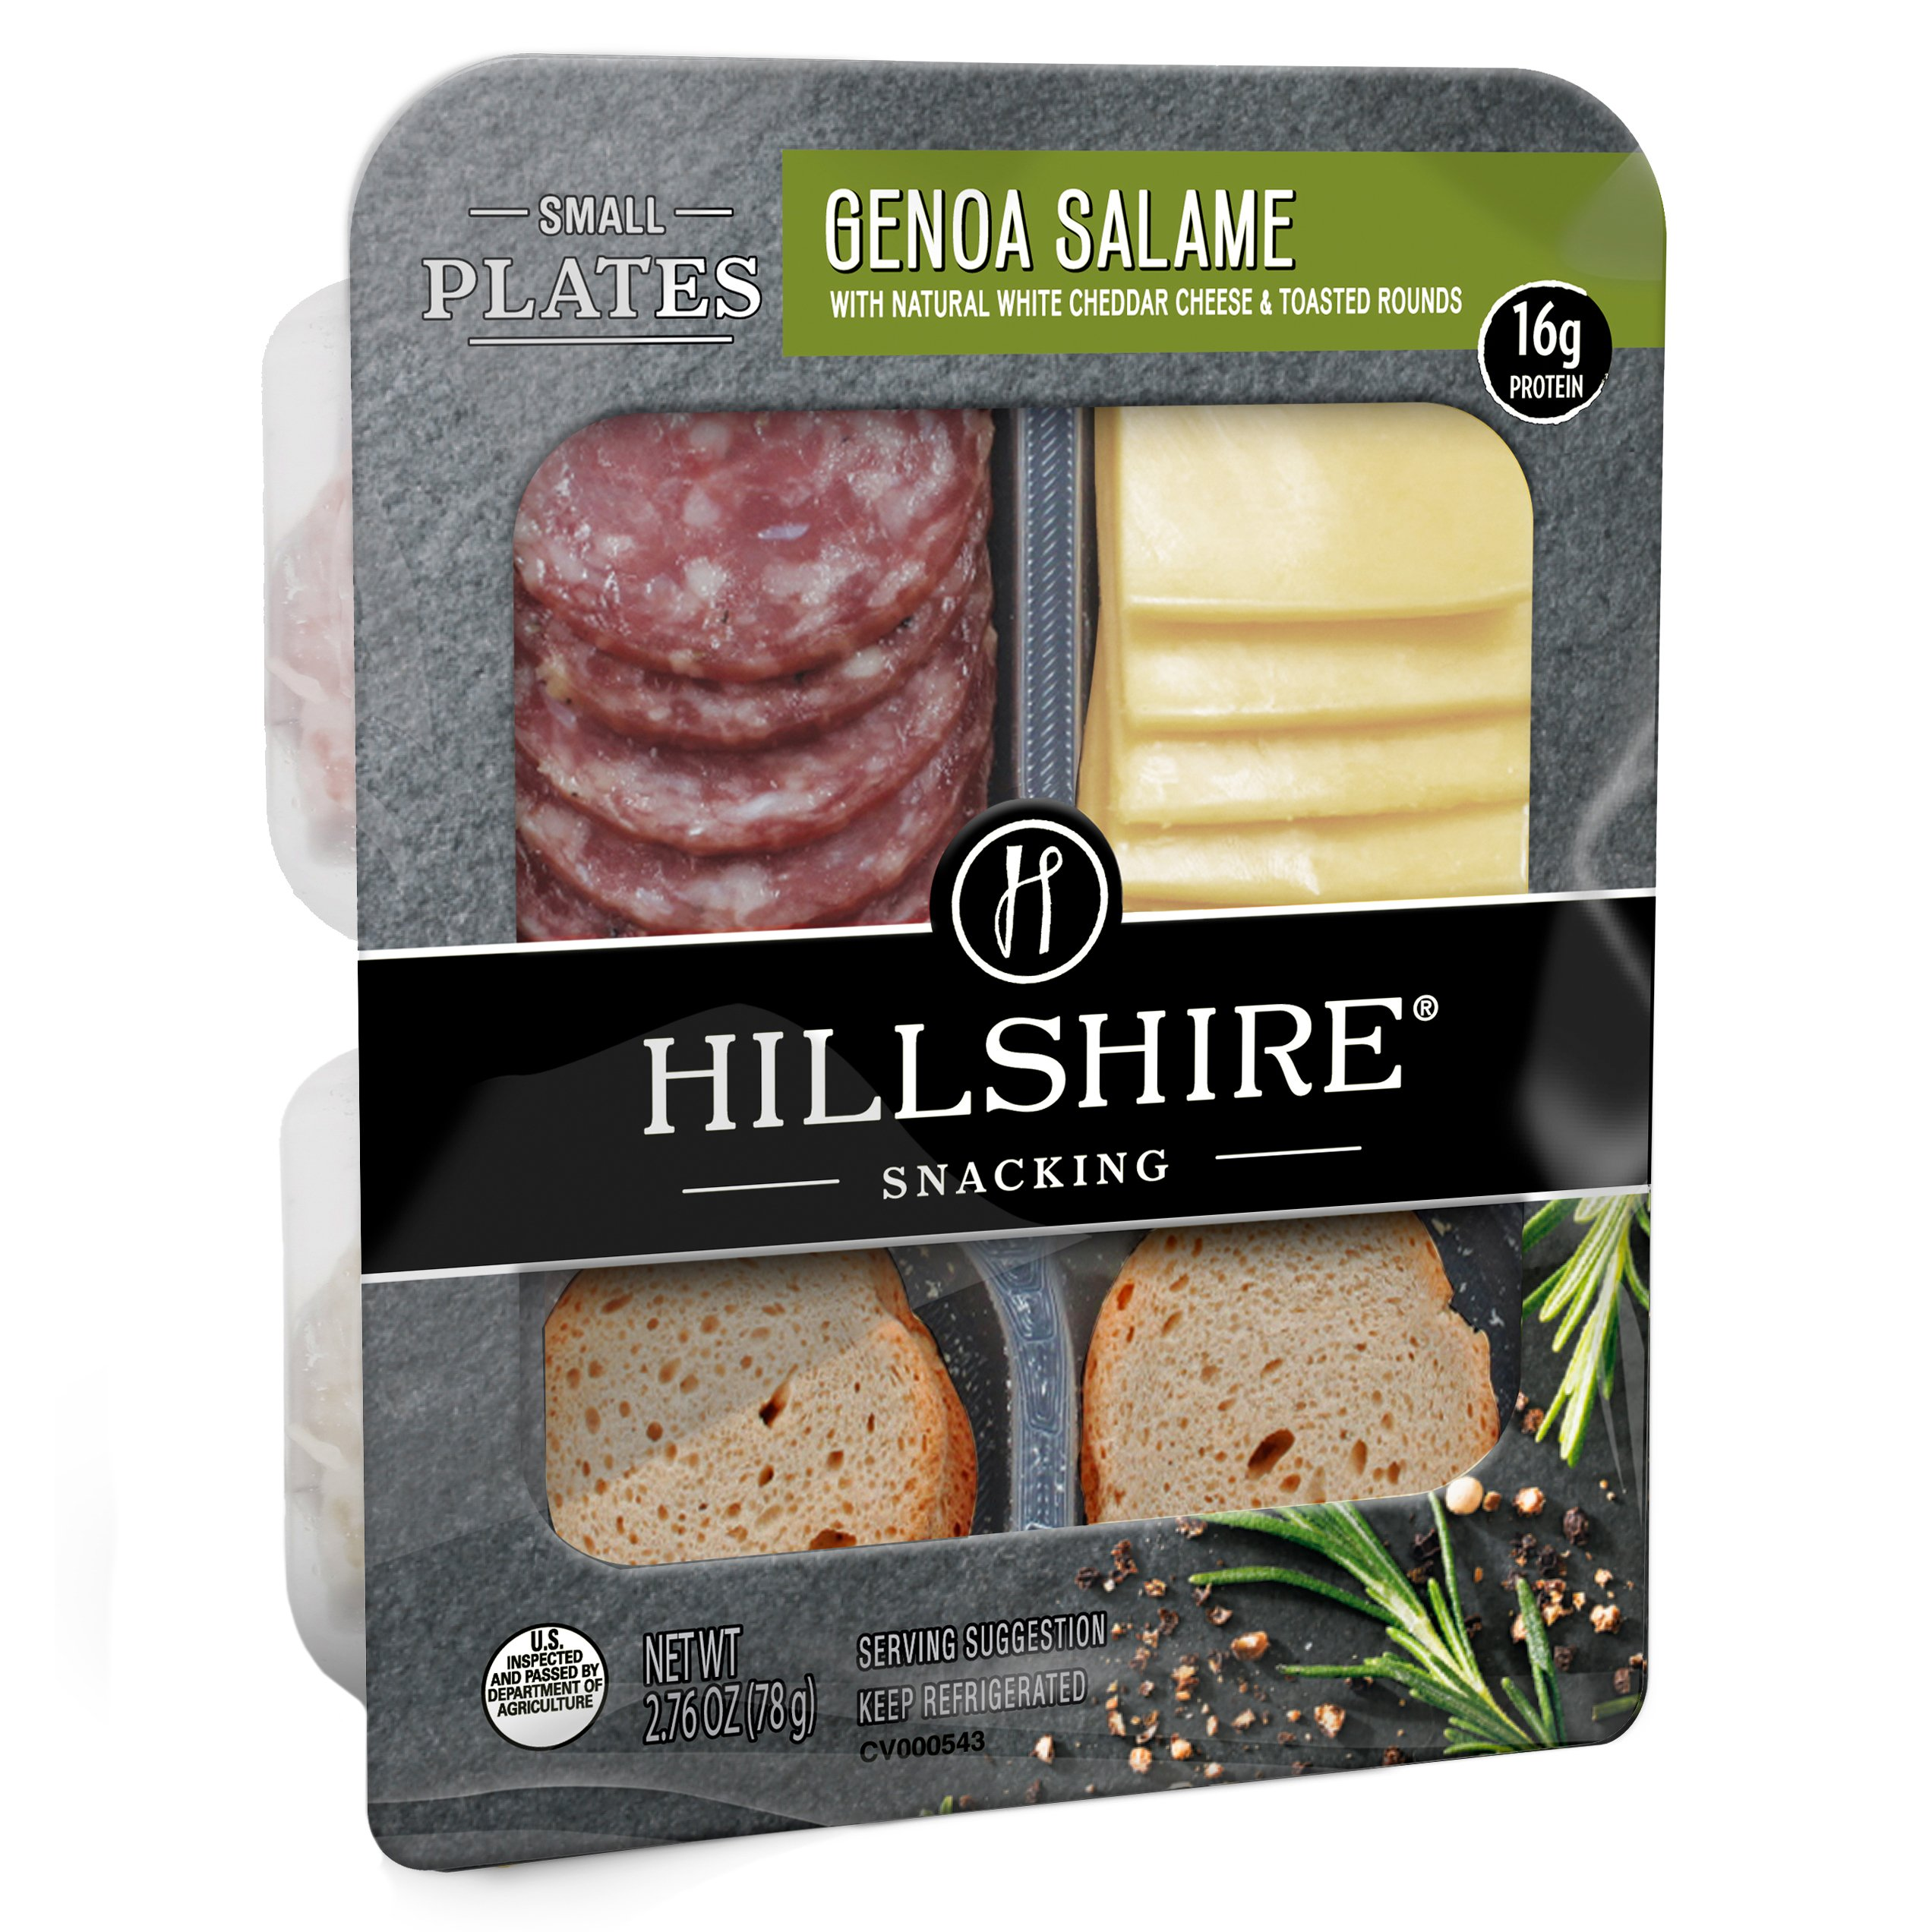 Hillshire Farm Genoa Salame And White Cheddar Cheese Snack Plate Shop Snack Trays At H E B